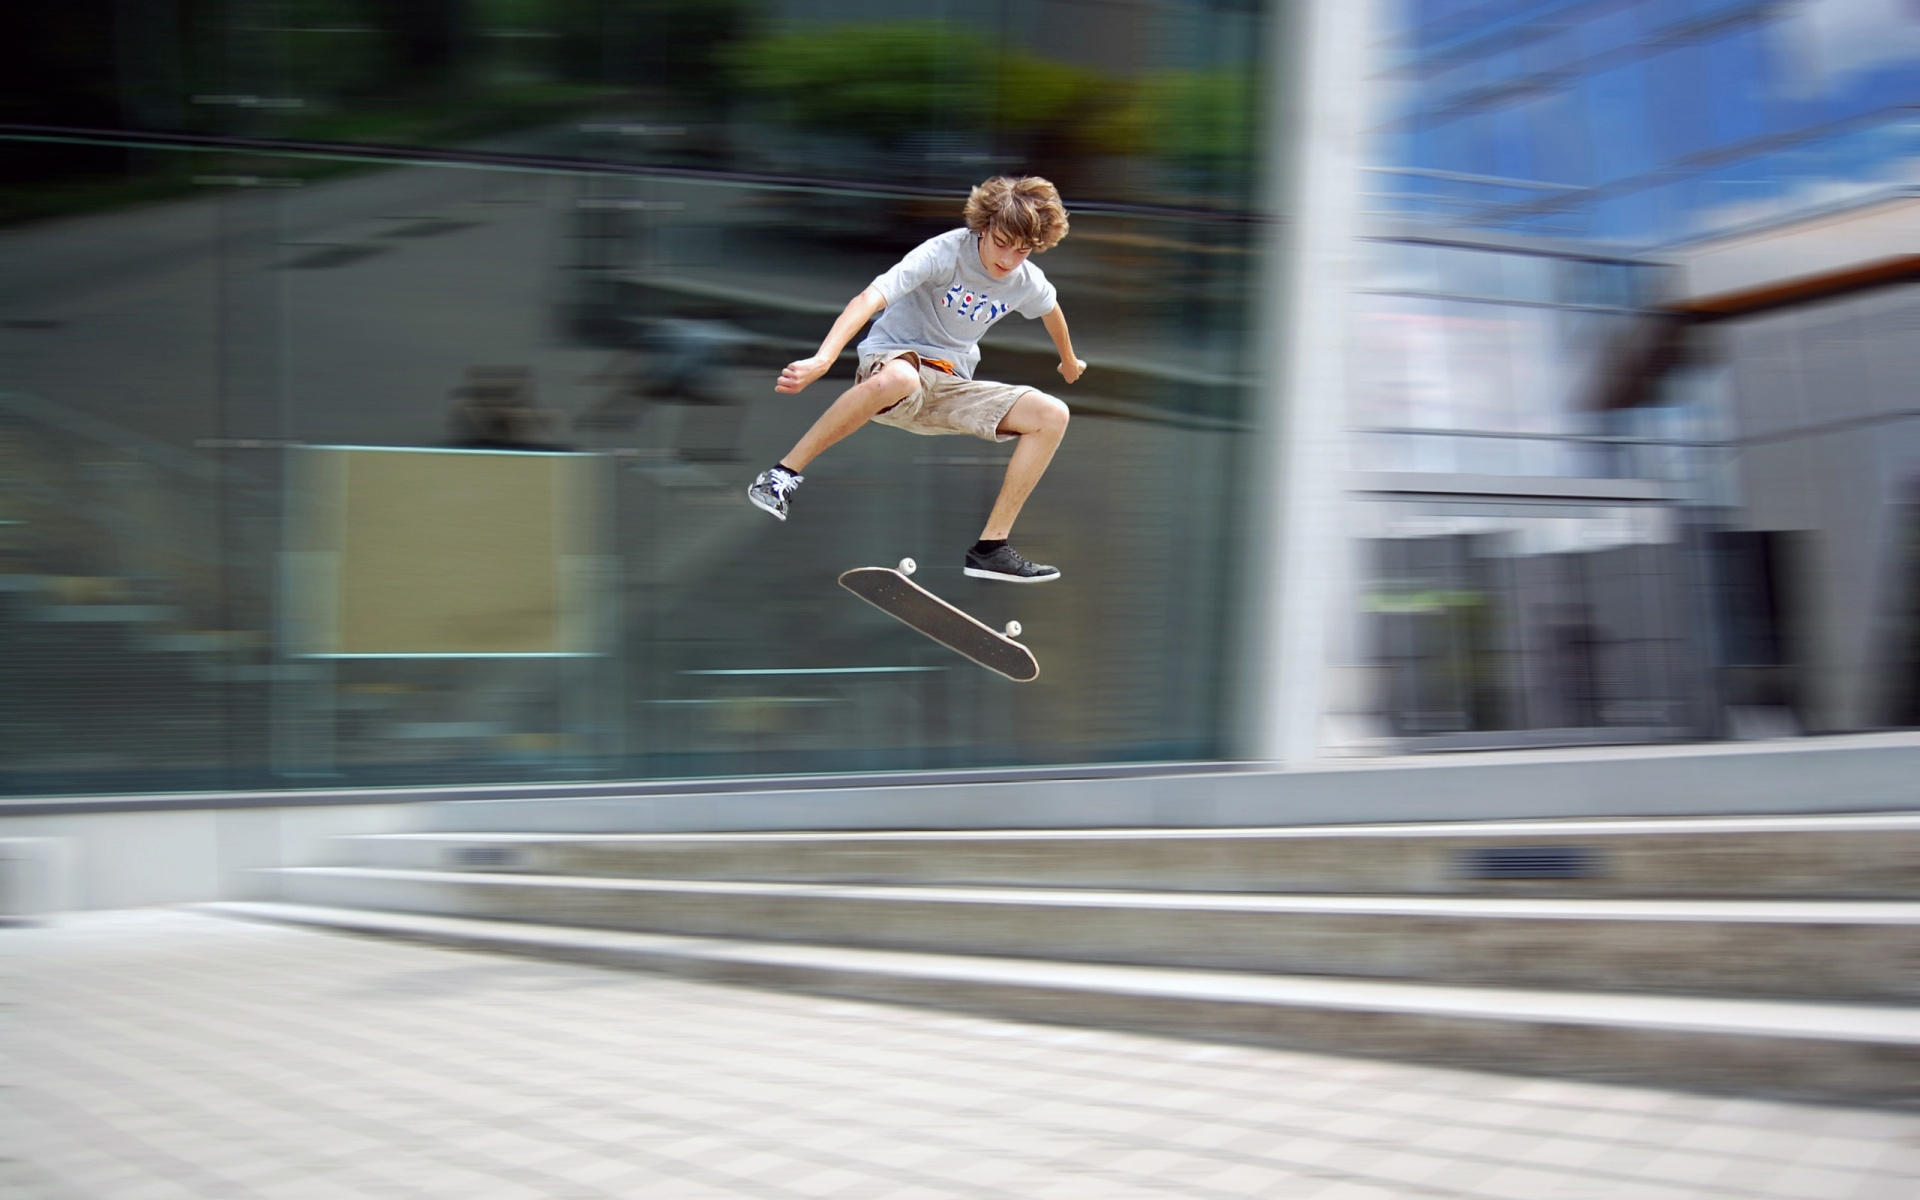 Skate wallpapers HD   44590 1920x1200